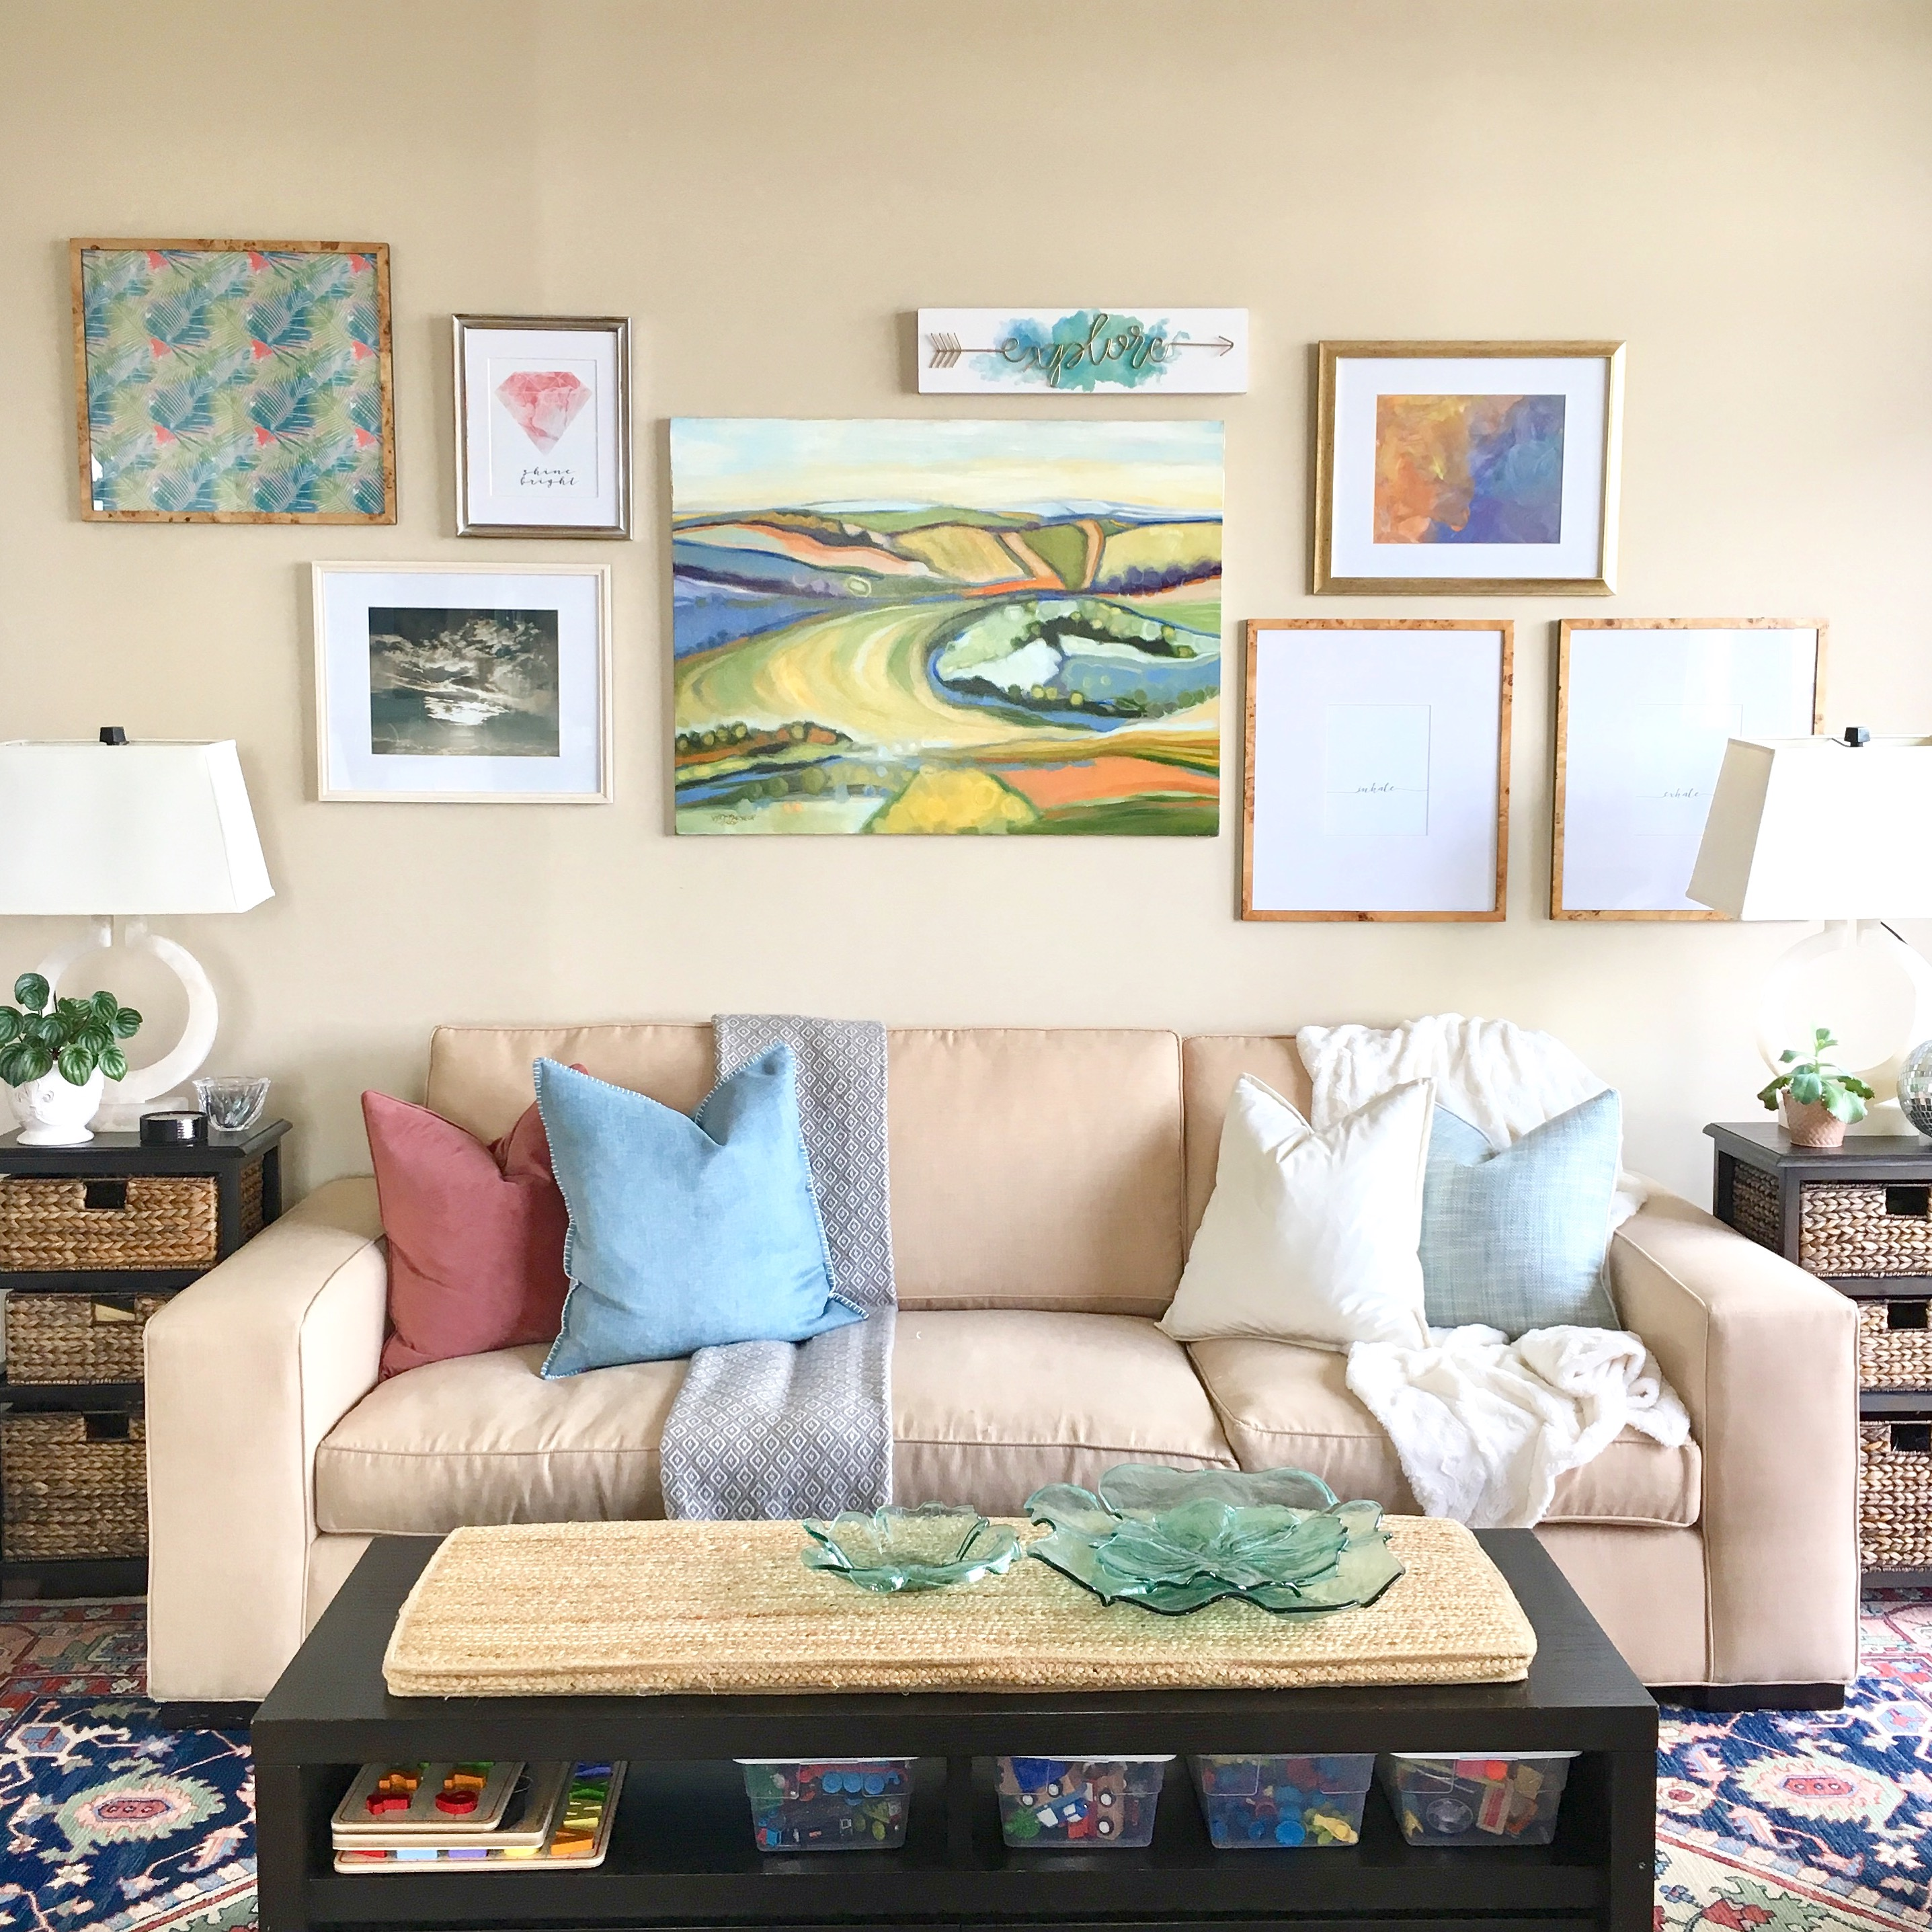 Need an Easy Room Refresh? Start with Your Walls